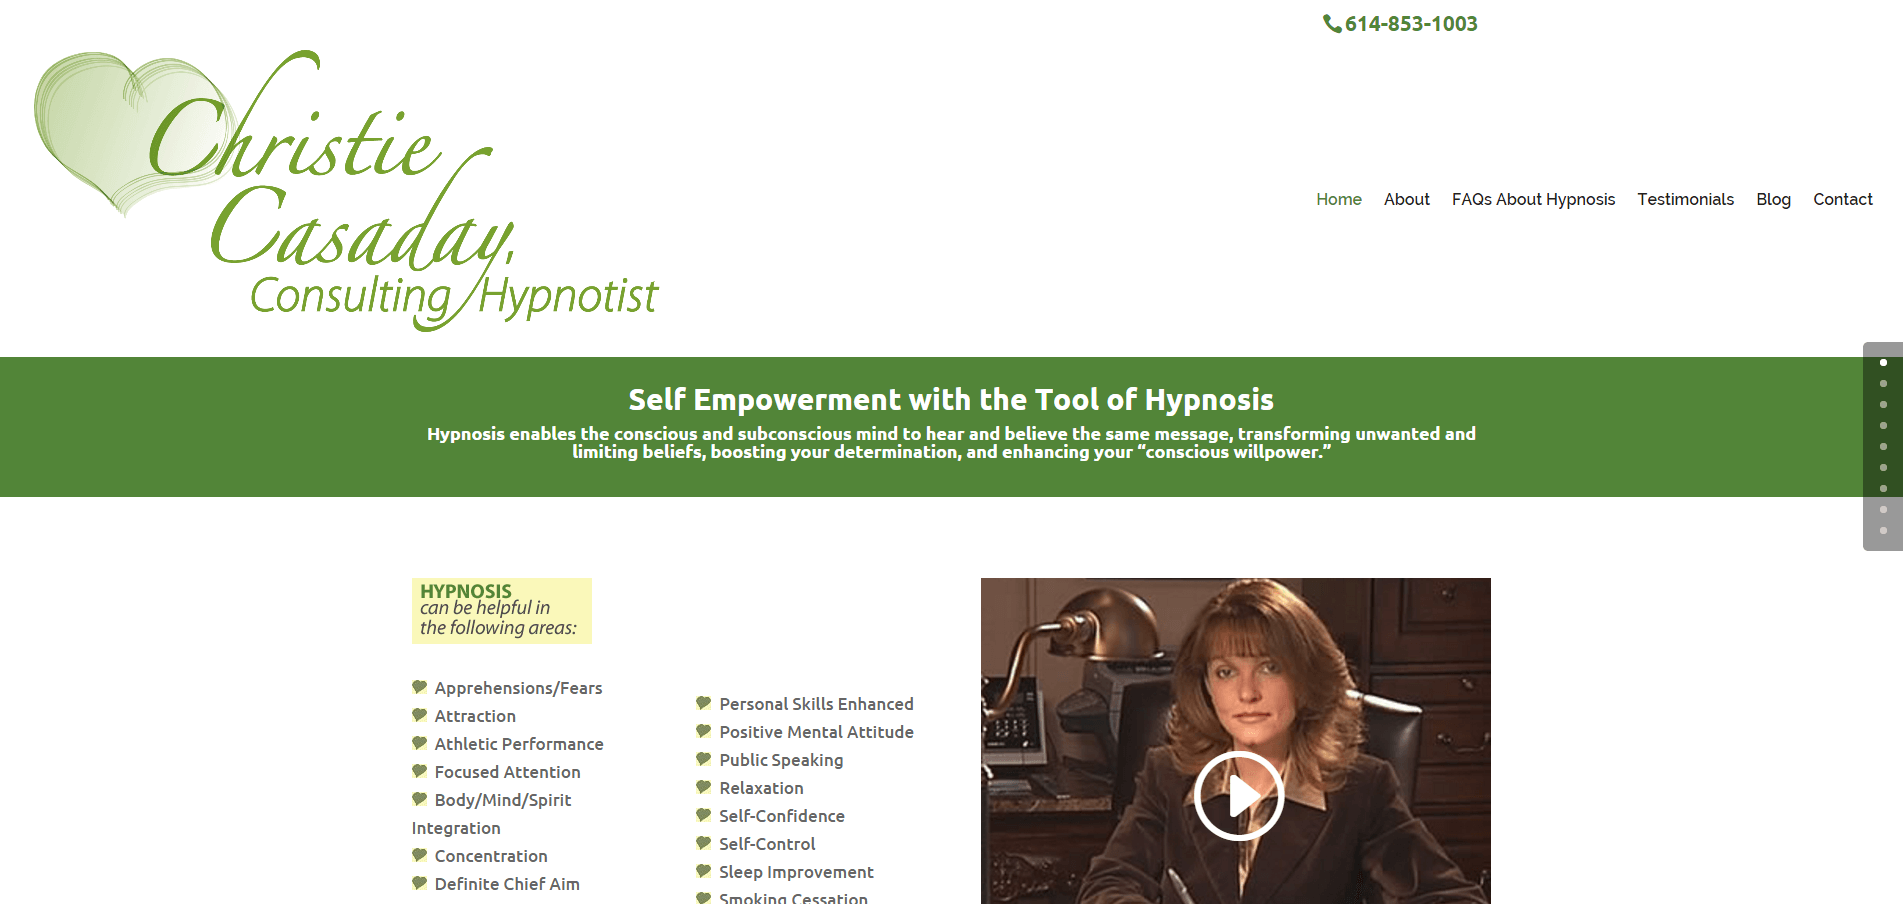 Christie Casaday Consulting Hypnotist